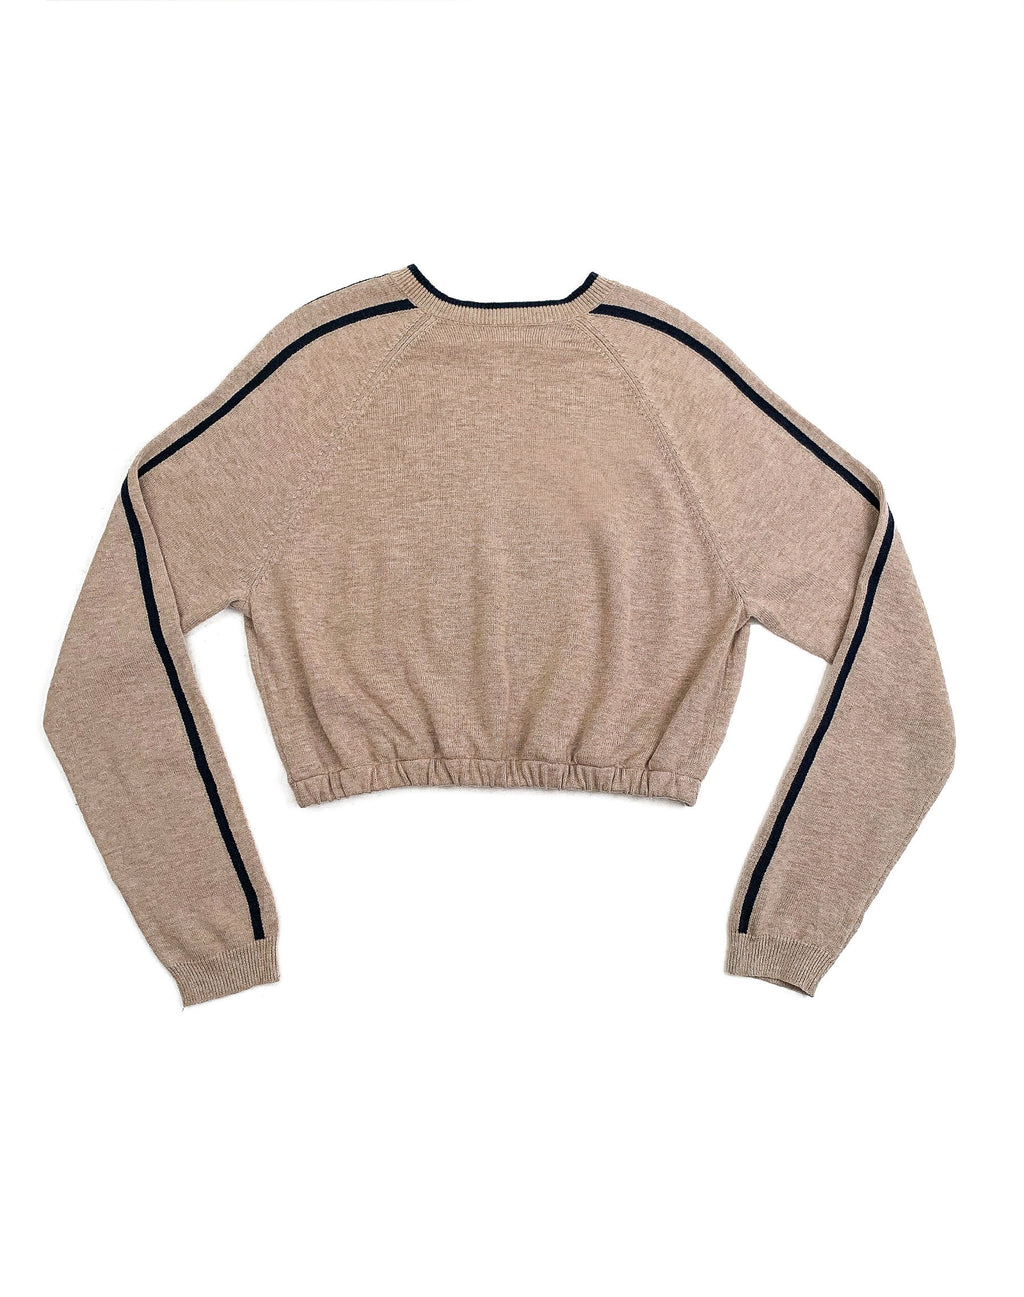 PATAGONIA BEIGE CROP SWEATER